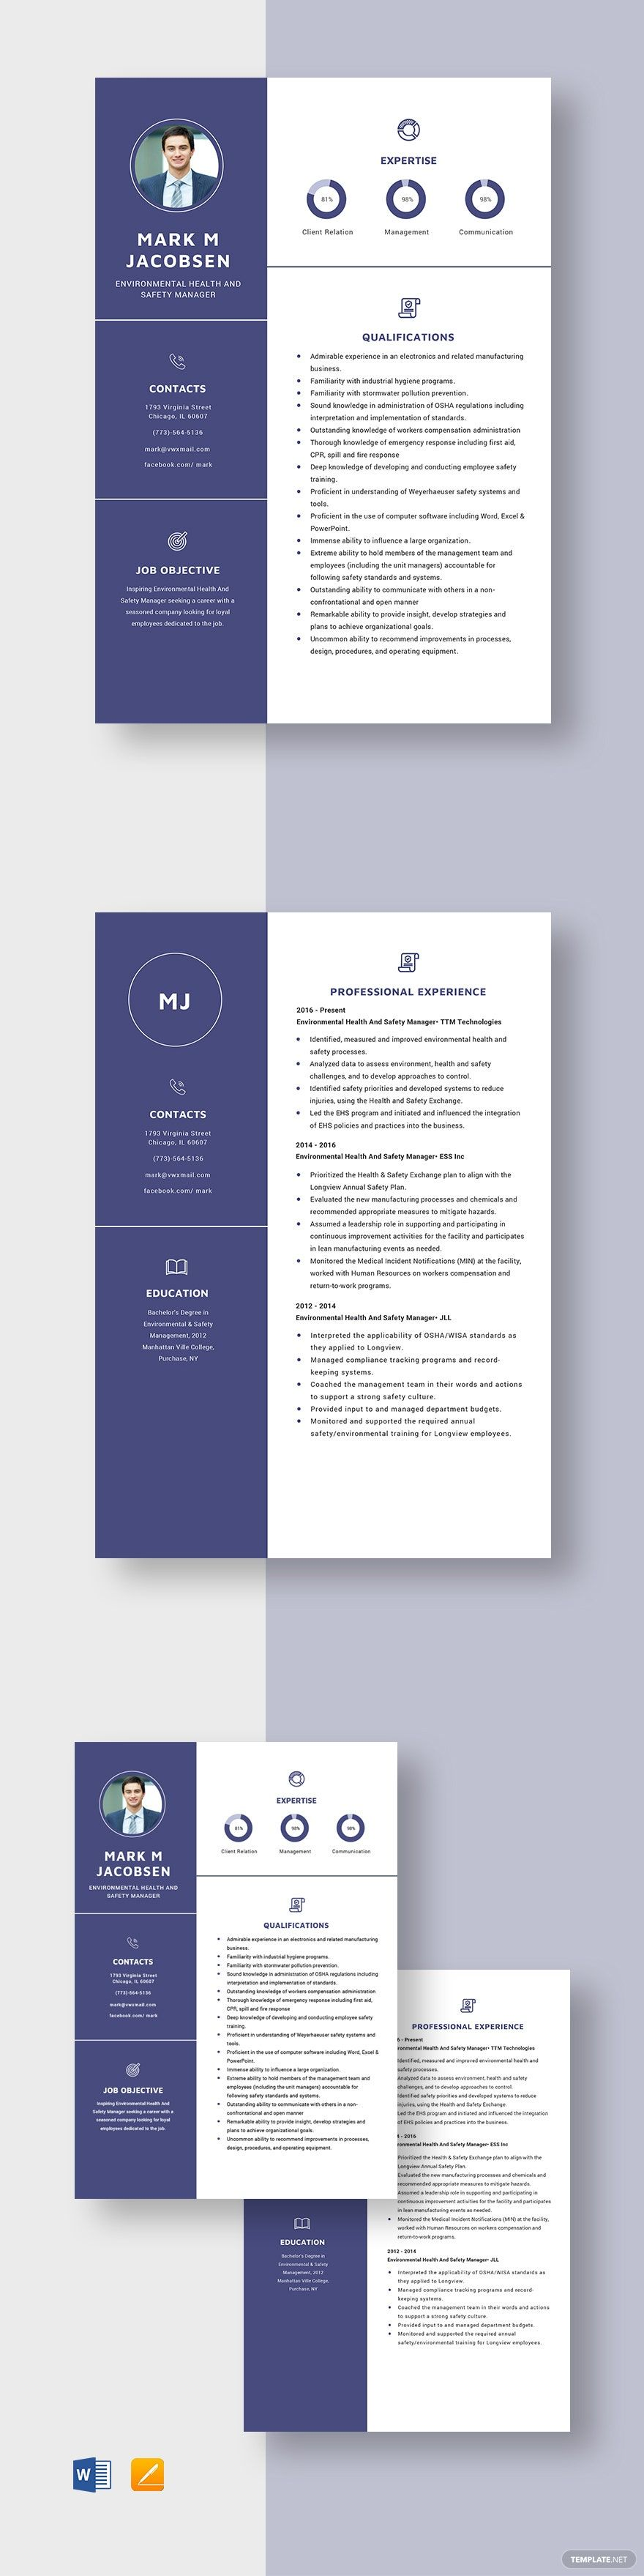 Environmental health and safety manager resume template in